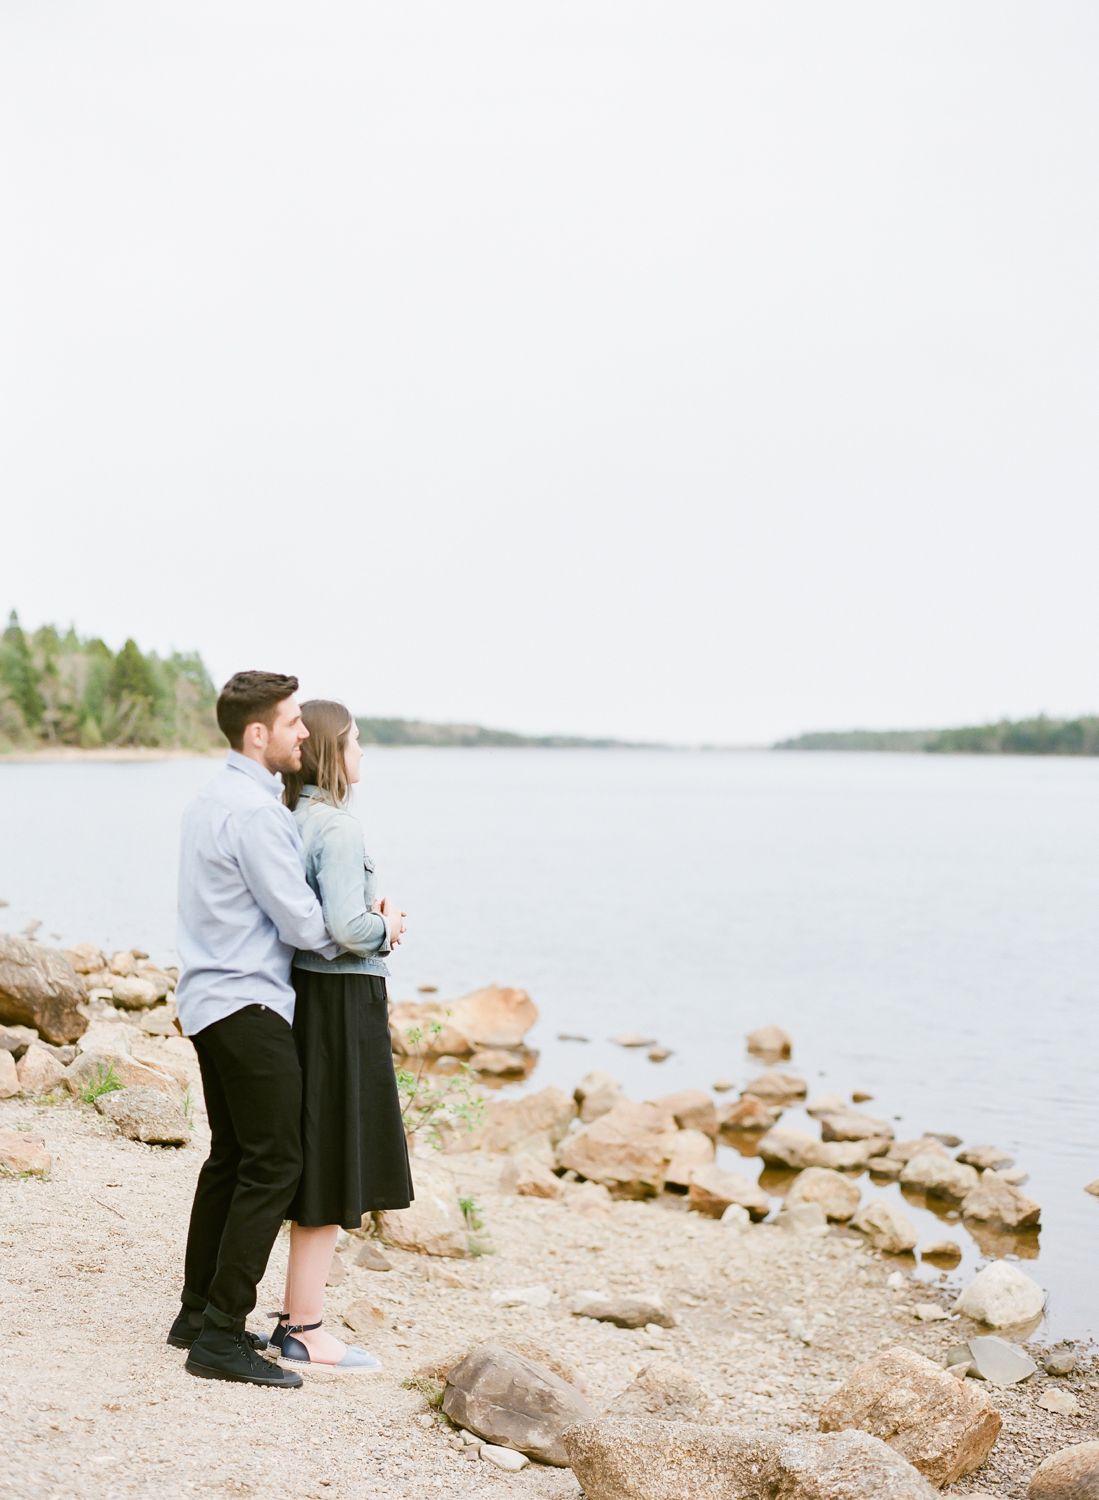 Jacqueline Anne Photography - Maddie and Ryan - Long Lake Engagement Session in Halifax-11.jpg